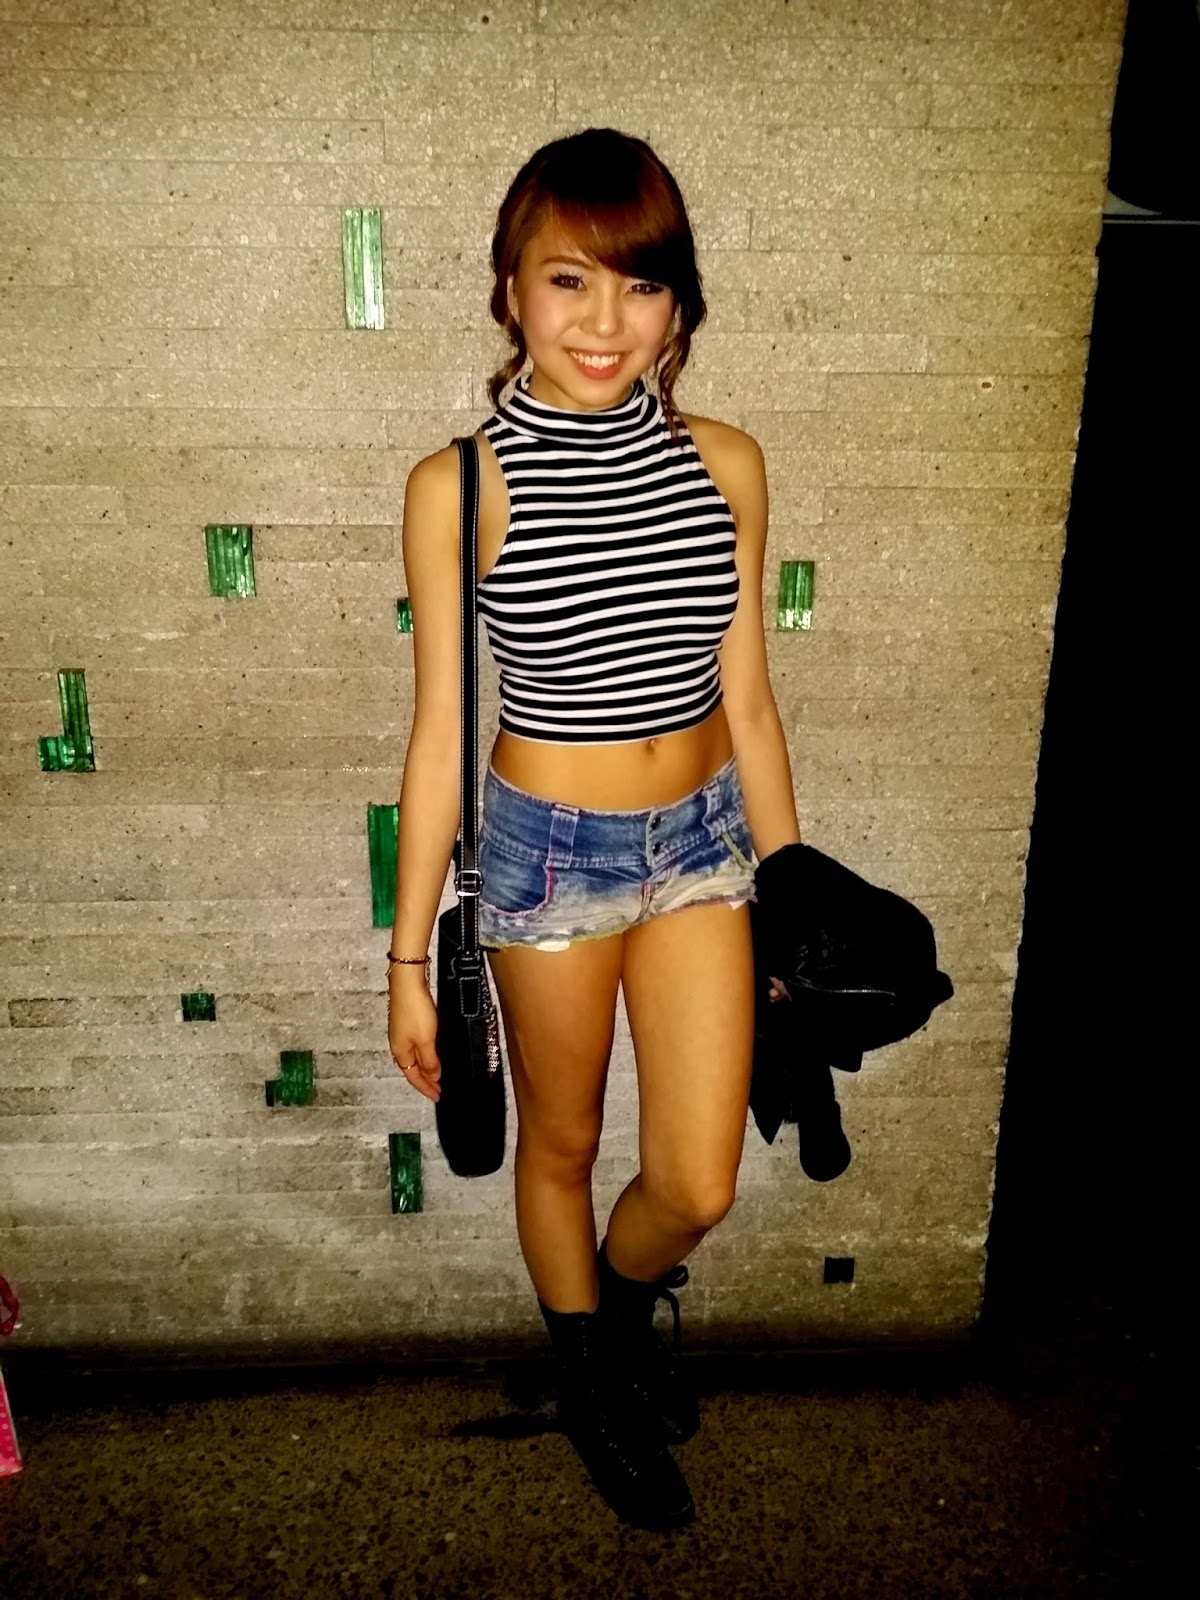 asian singles in spring gap Use our free personal ads to find available singles in spring gap and get to know them in our chat room sign up today to have fun in spring gap.